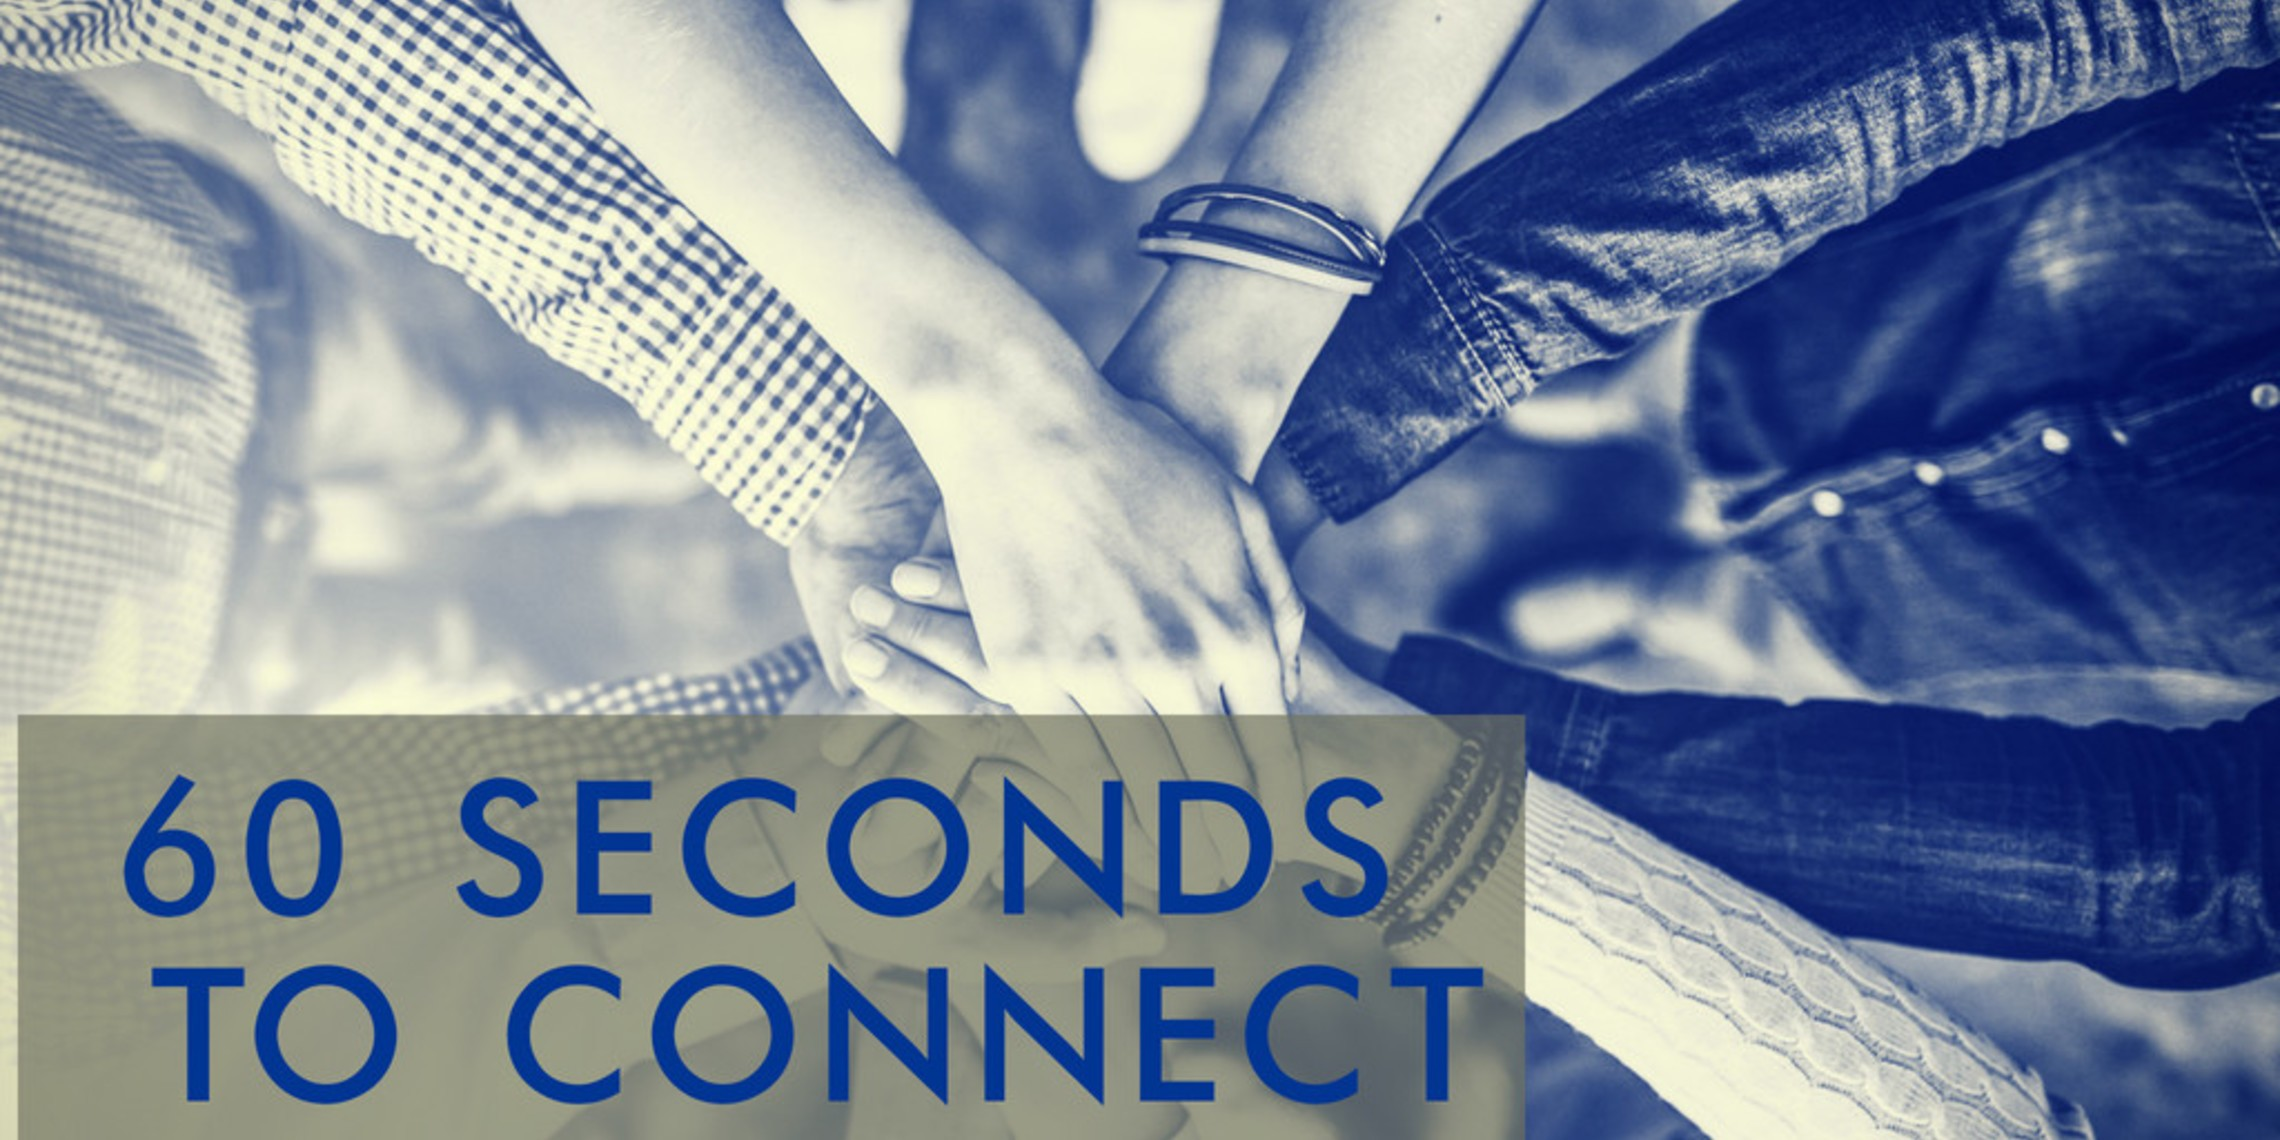 60 Seconds To Connect